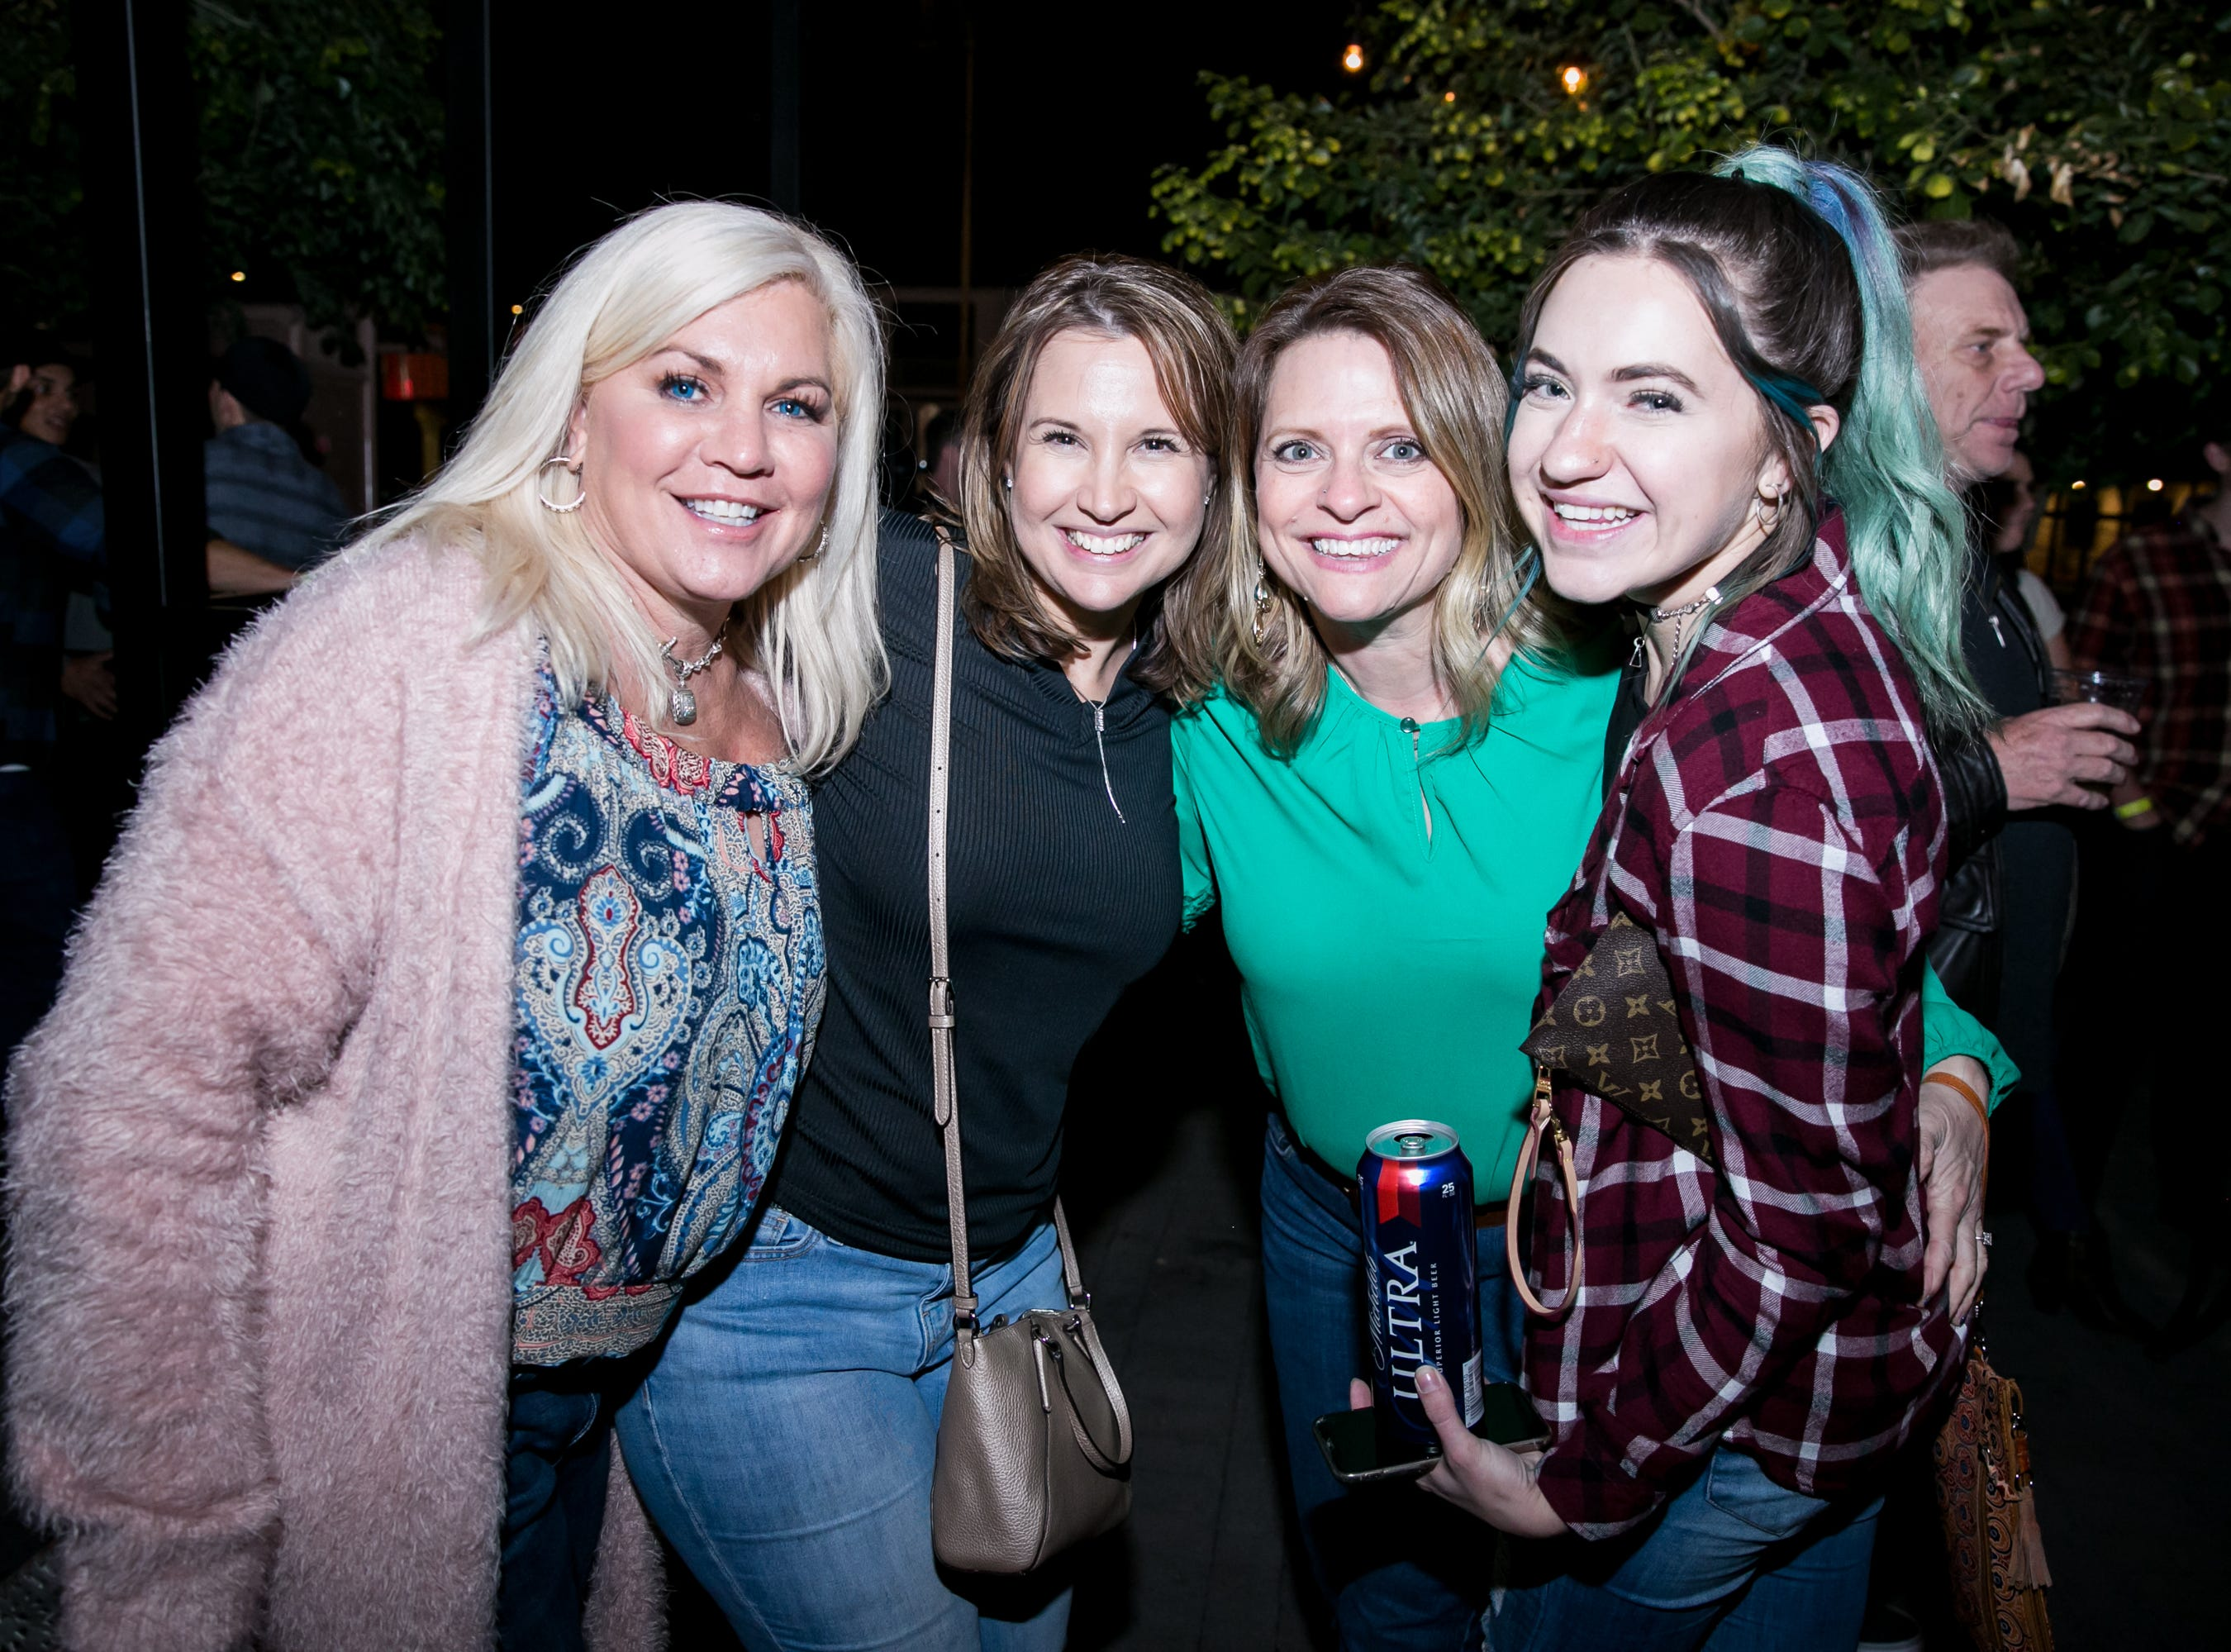 These ladies did the boot scootin' boogie during the KMLE Country 90's Throwback at The Van Buren on Friday, Jan. 11, 2019.